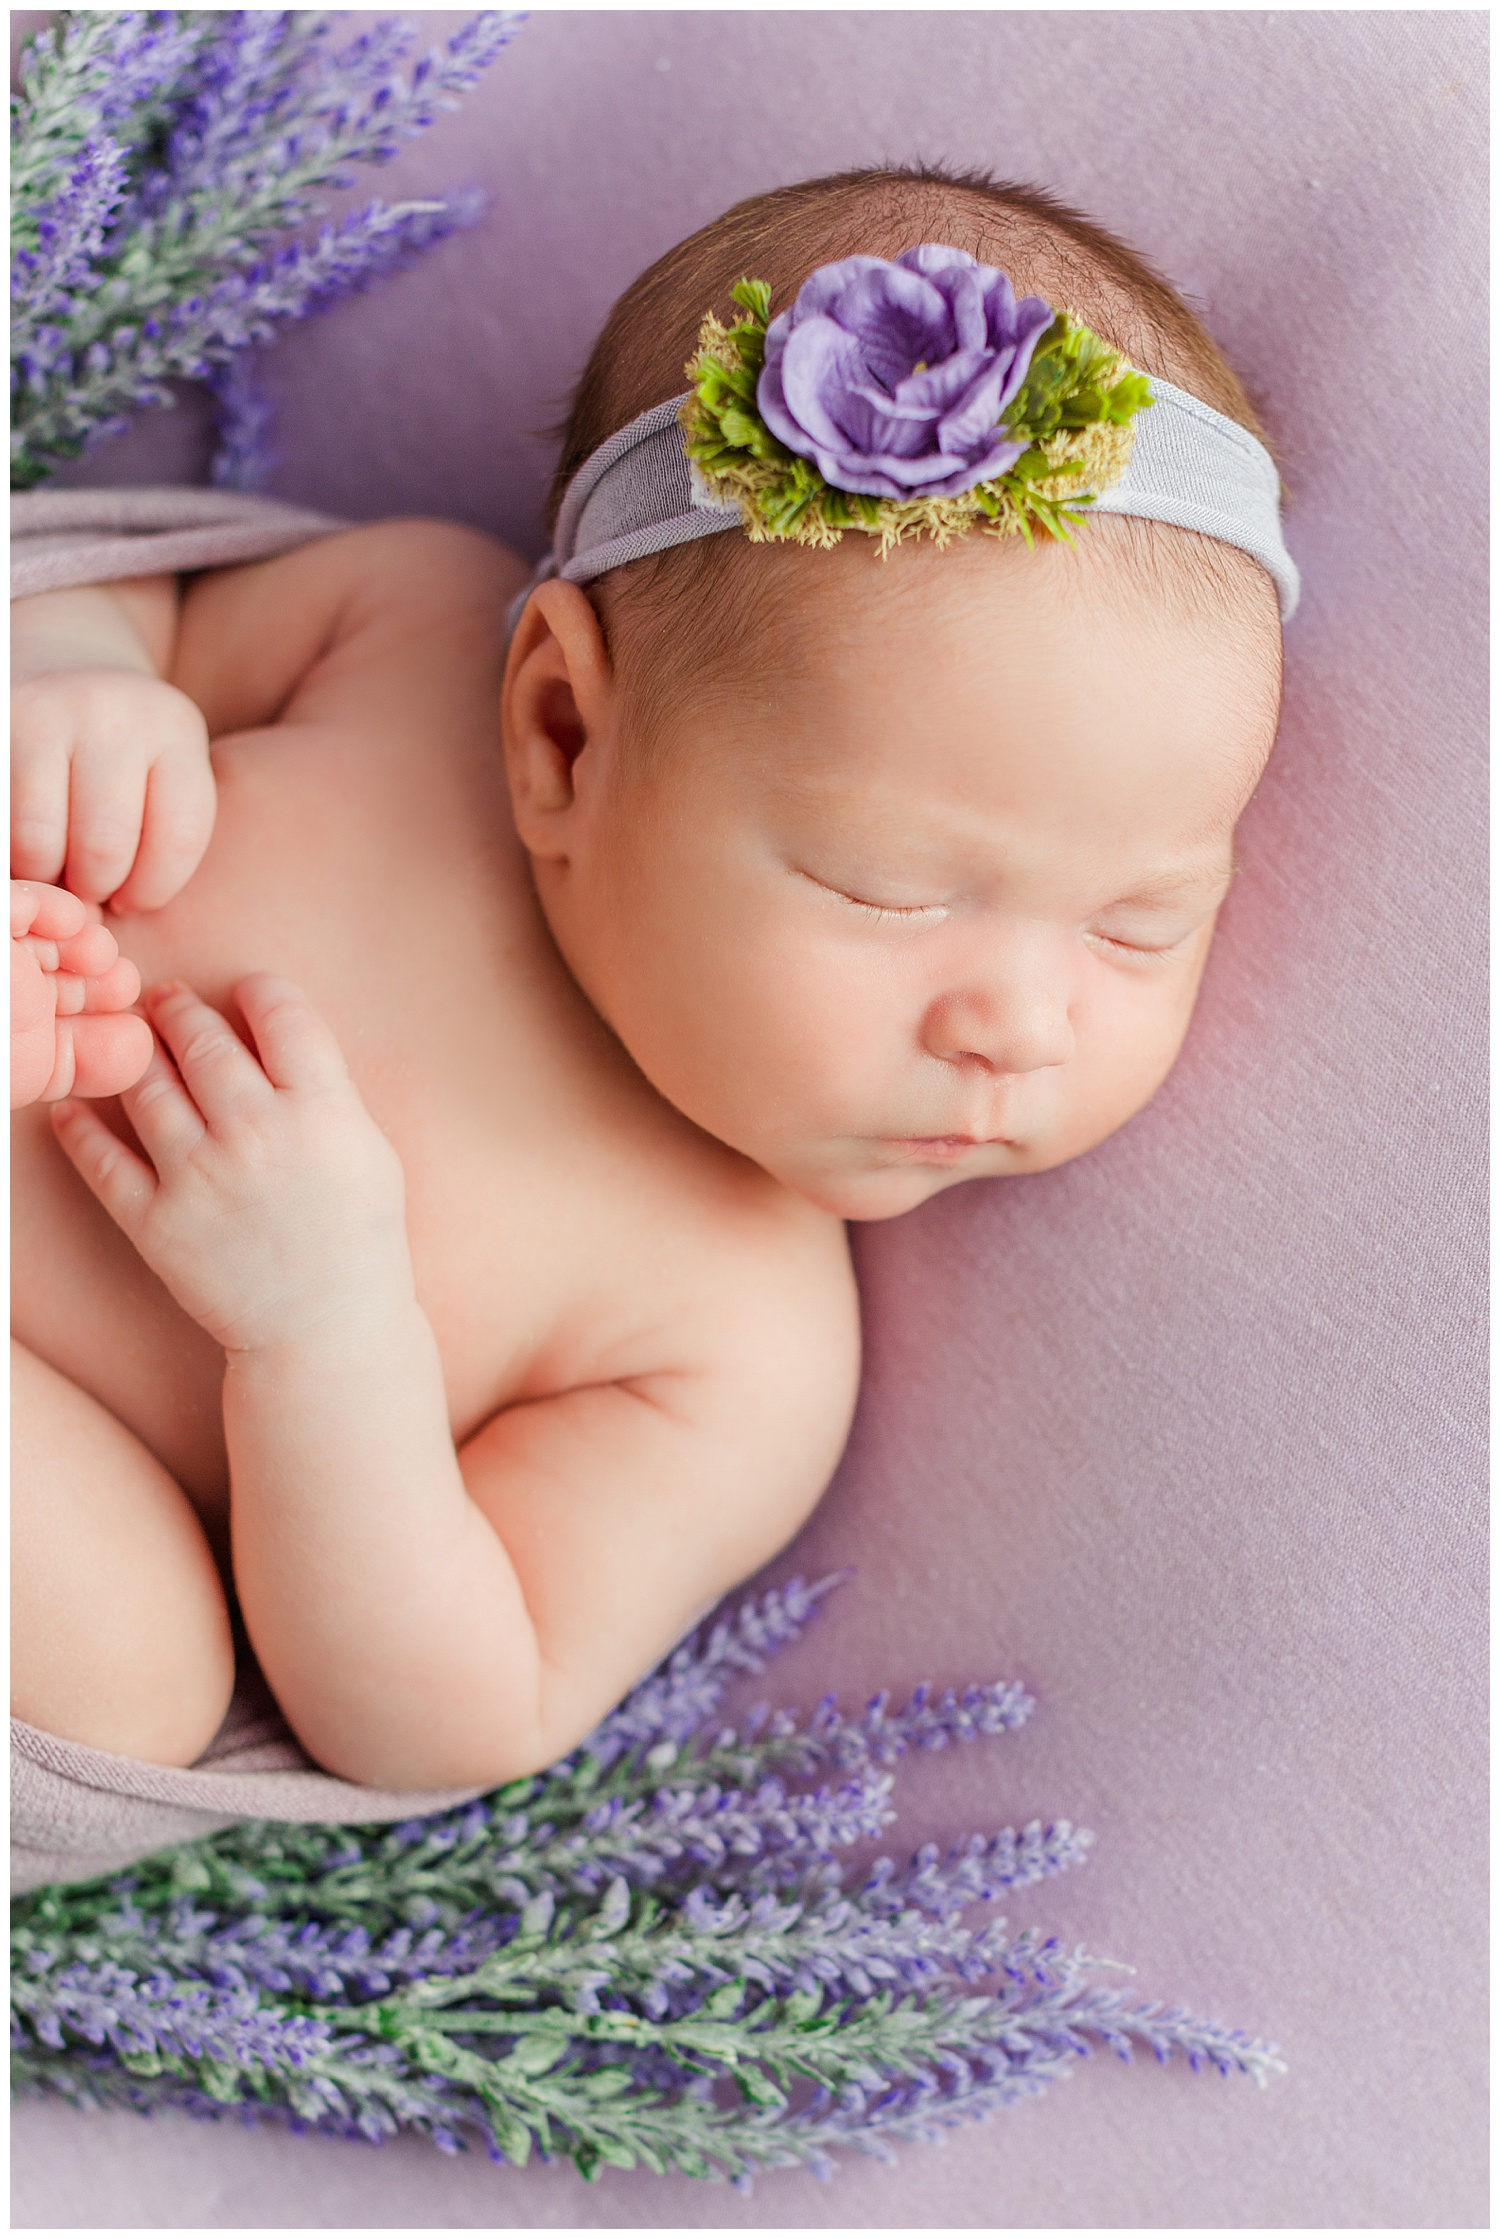 Baby Emma snuggled up with purple tones and spring florals | CB Studio